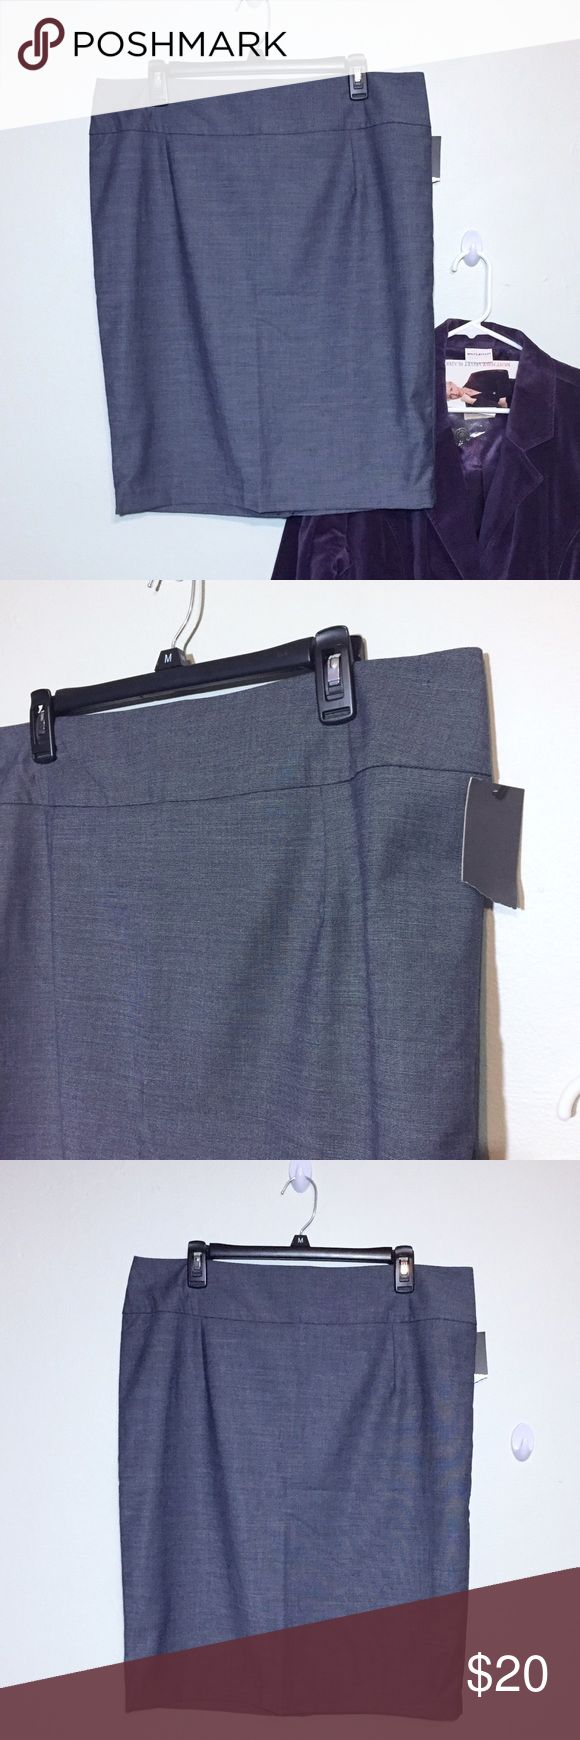 """NEW Mossimo Gray Pencil Skirt Plus 16 NEW With Tags! Mossimo Gray Pencil Skirt. Plus Size 16 measures flat approximately: 18"""" across waist, 22"""" across hips, 19"""" across bottom, 24"""" Long with 7"""" slit. Back zip closure. 81% poly, 17% rayon, 2% spandex. Fully lined 100% poly. Machine Wash. 127/50/010218 Grey office work career business job Mossimo Supply Co Skirts Pencil"""